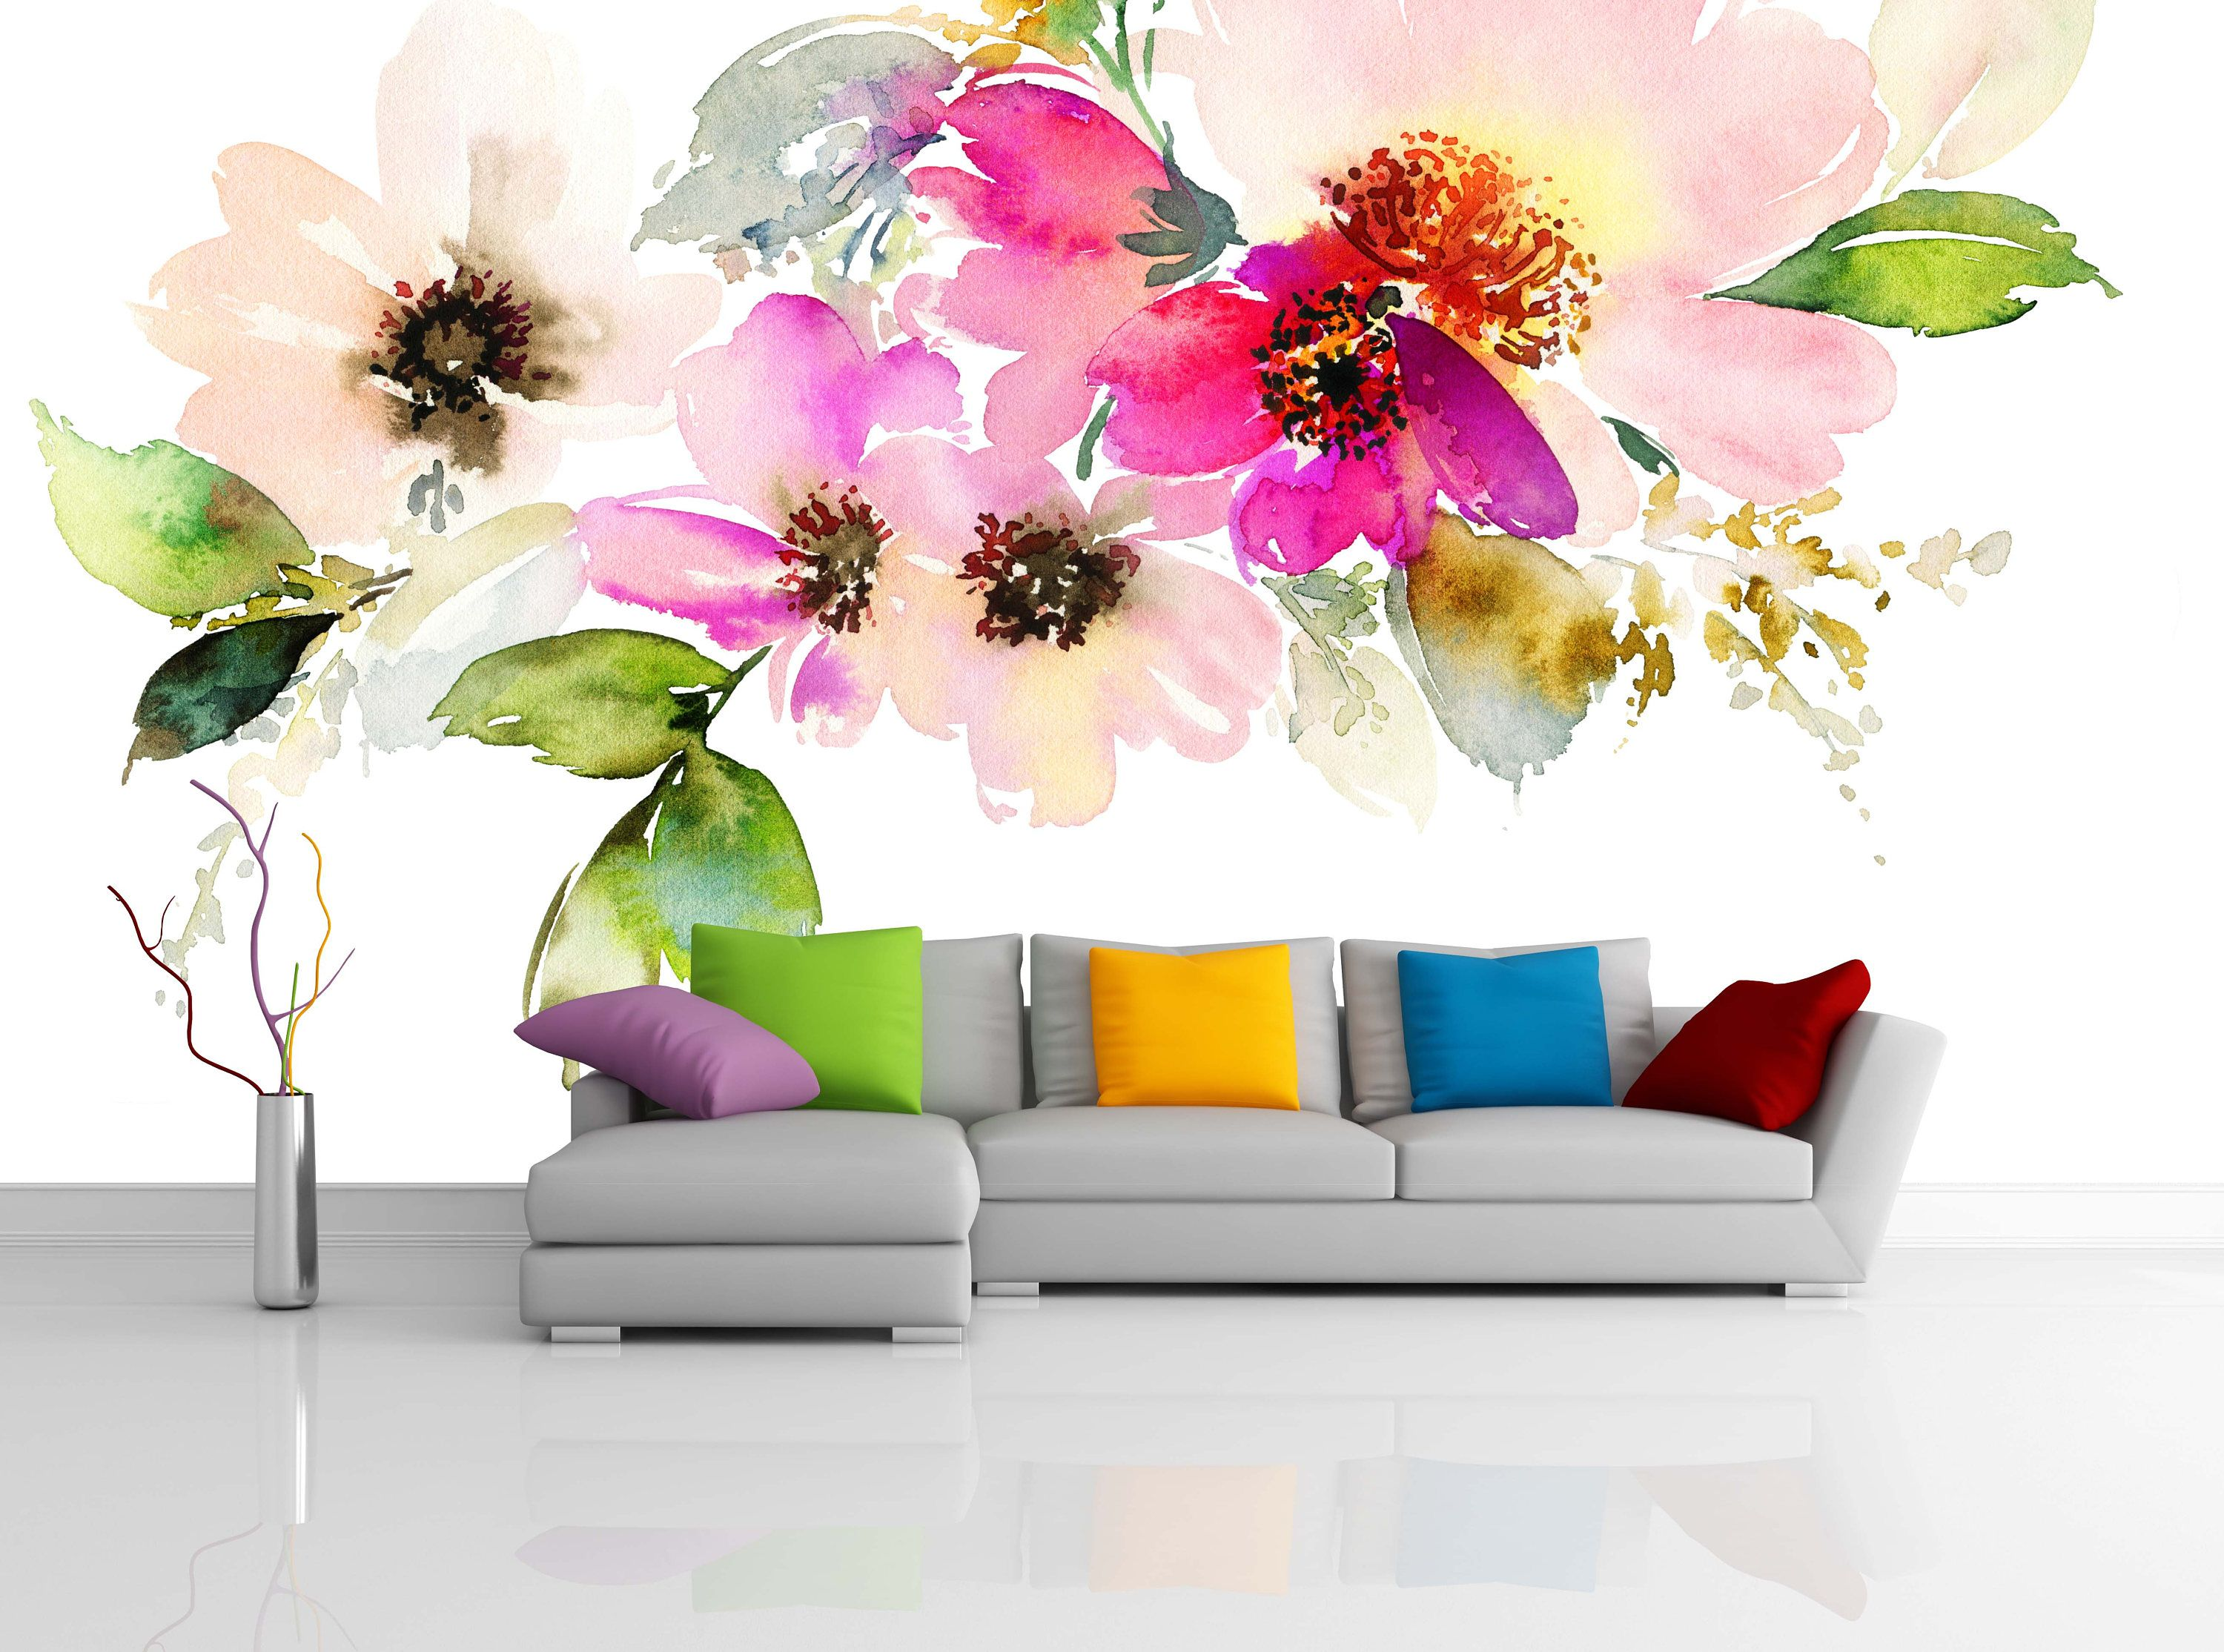 Removable Wallpaper Mural Peel Stick Flowers Watercolor Illustration By Uniqstiq On Etsy Floral Wallpaper Bedroom Mural Wallpaper Decor